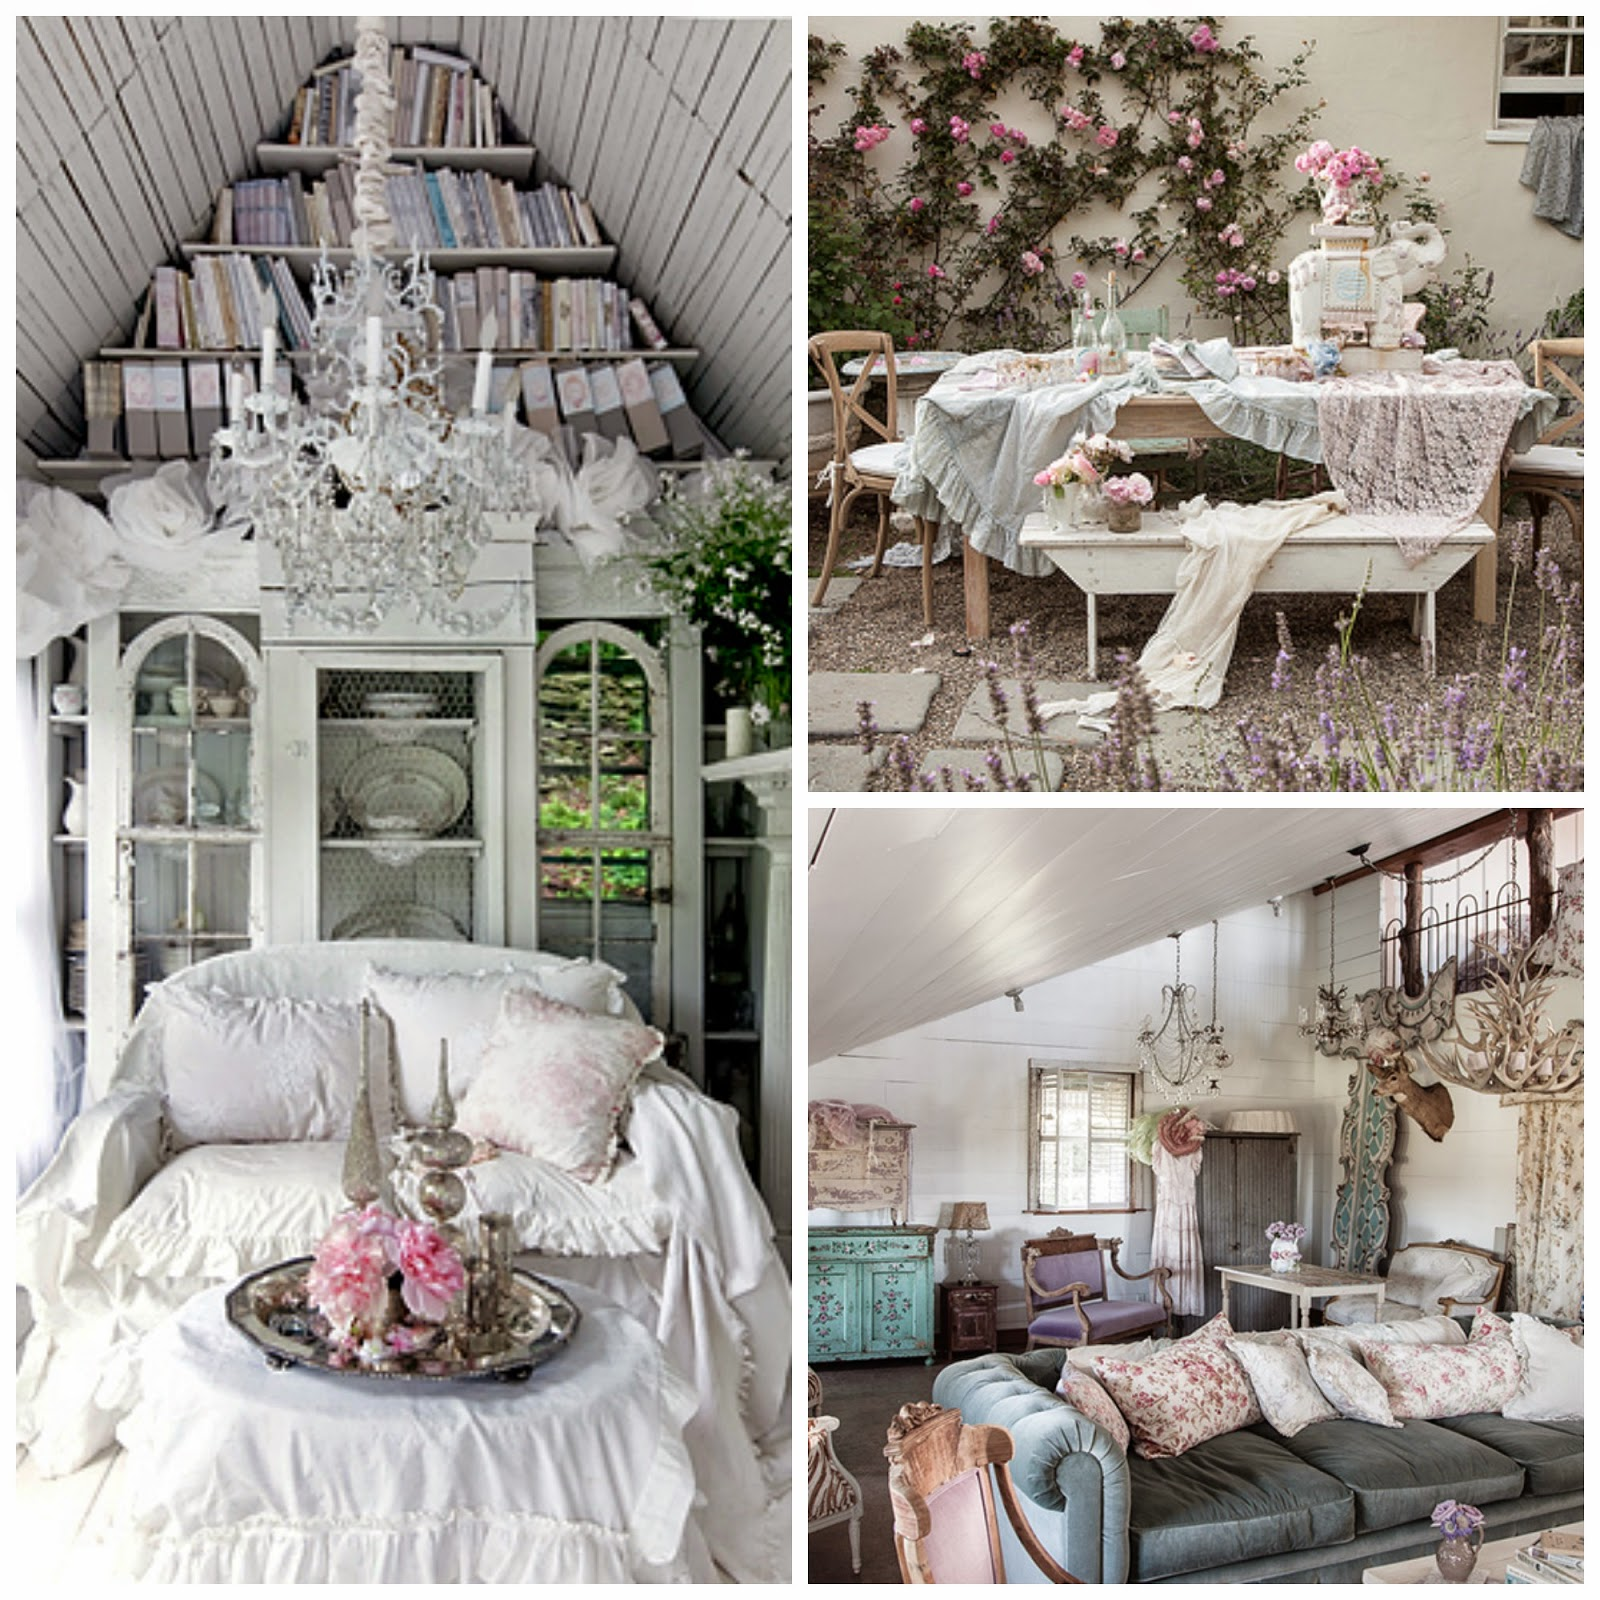 Some shabby chic inspiration all things nice Rachel ashwell interiors